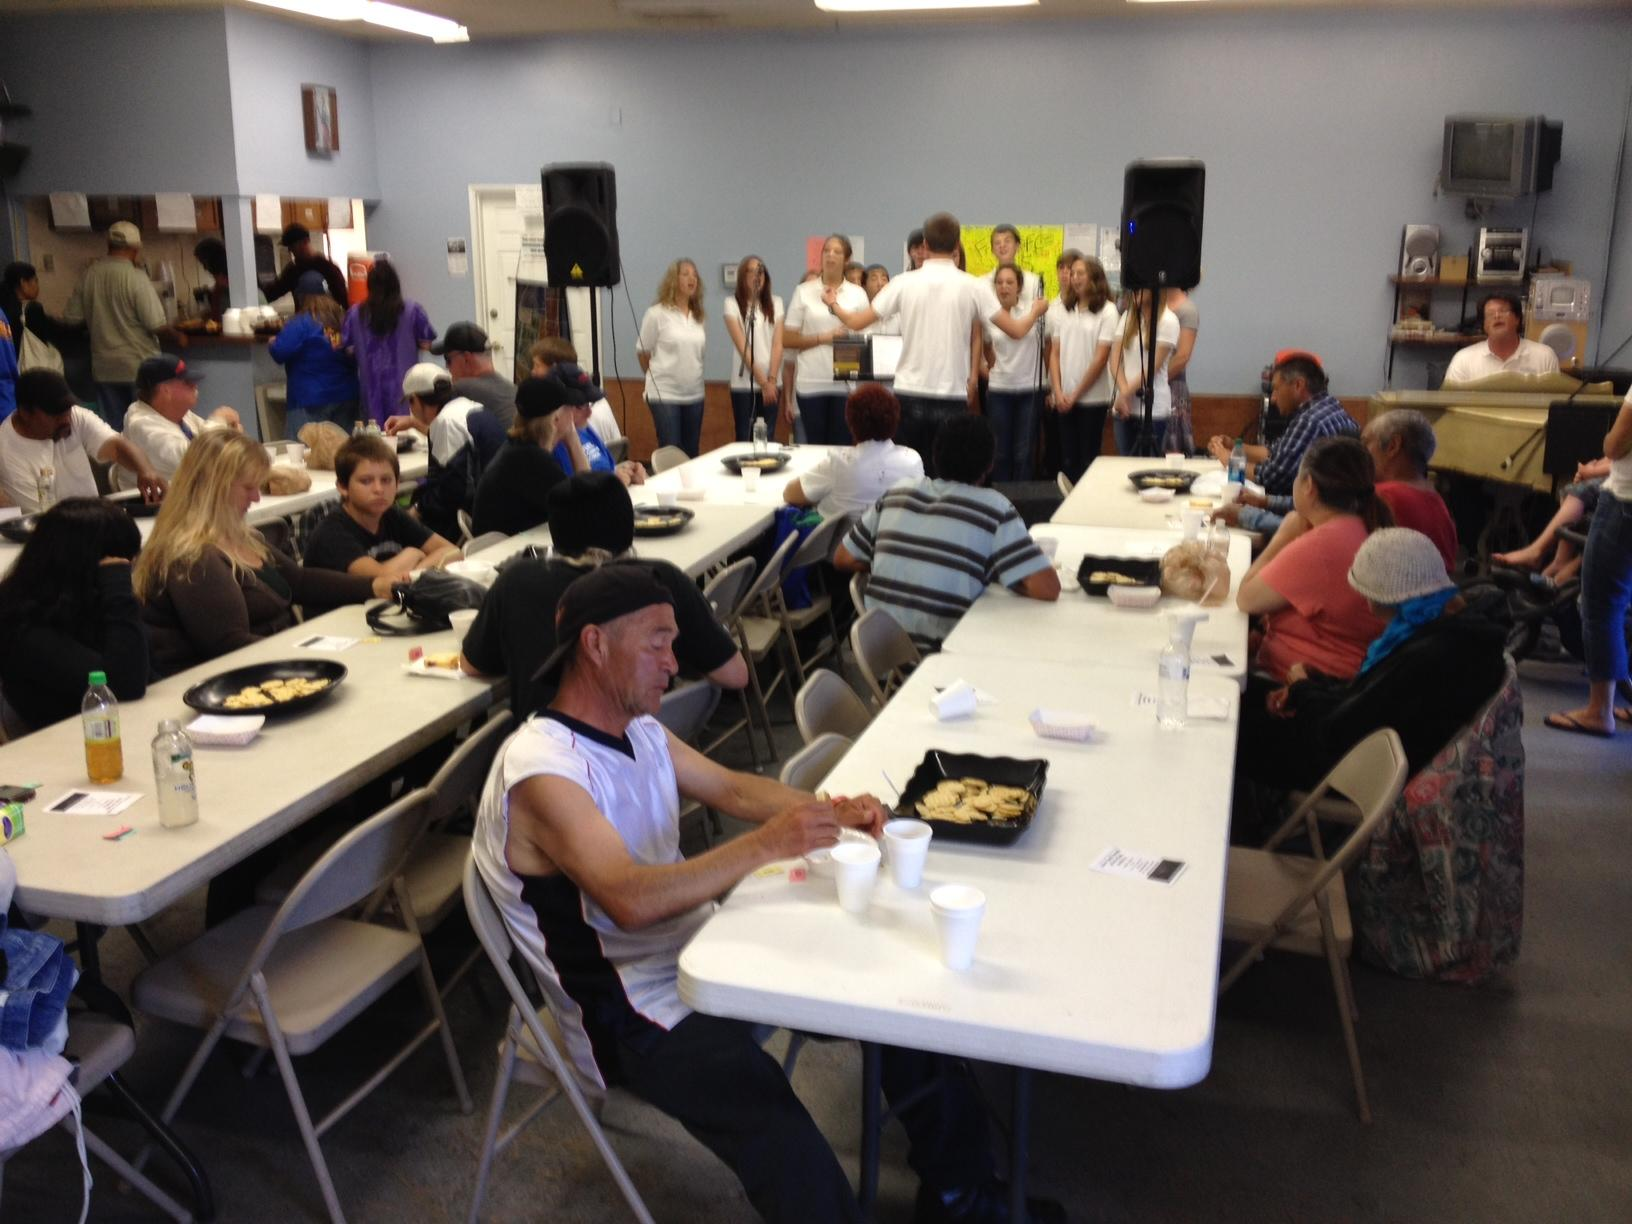 Bread of Life Rescue Mission (6/22/2012 PM)